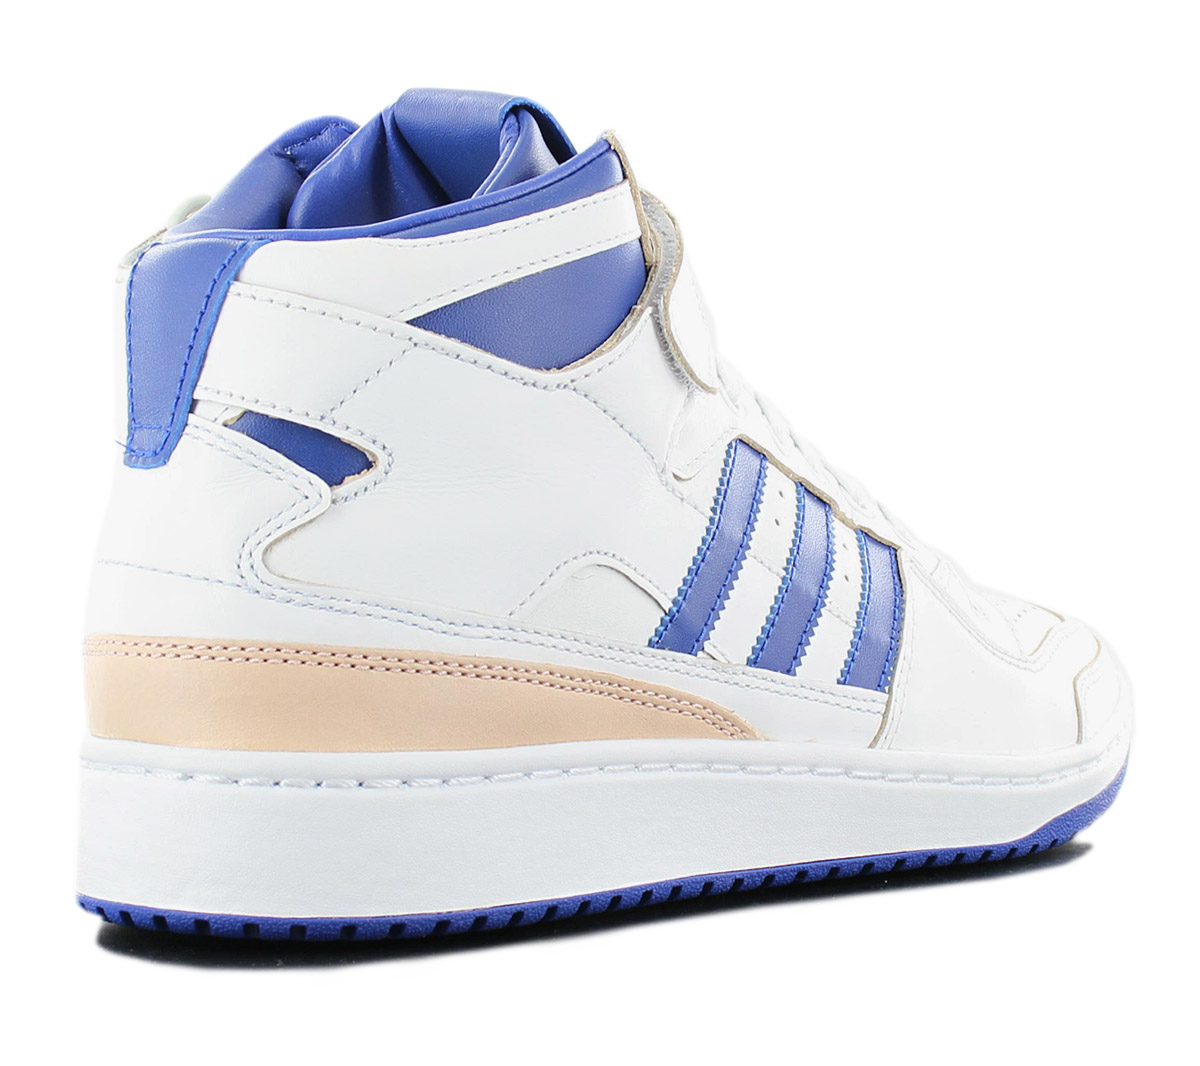 the latest 5a2f1 5c230 Adidas Originals Forum mid (Wrap) Bounce Mens Sneakers Shoes